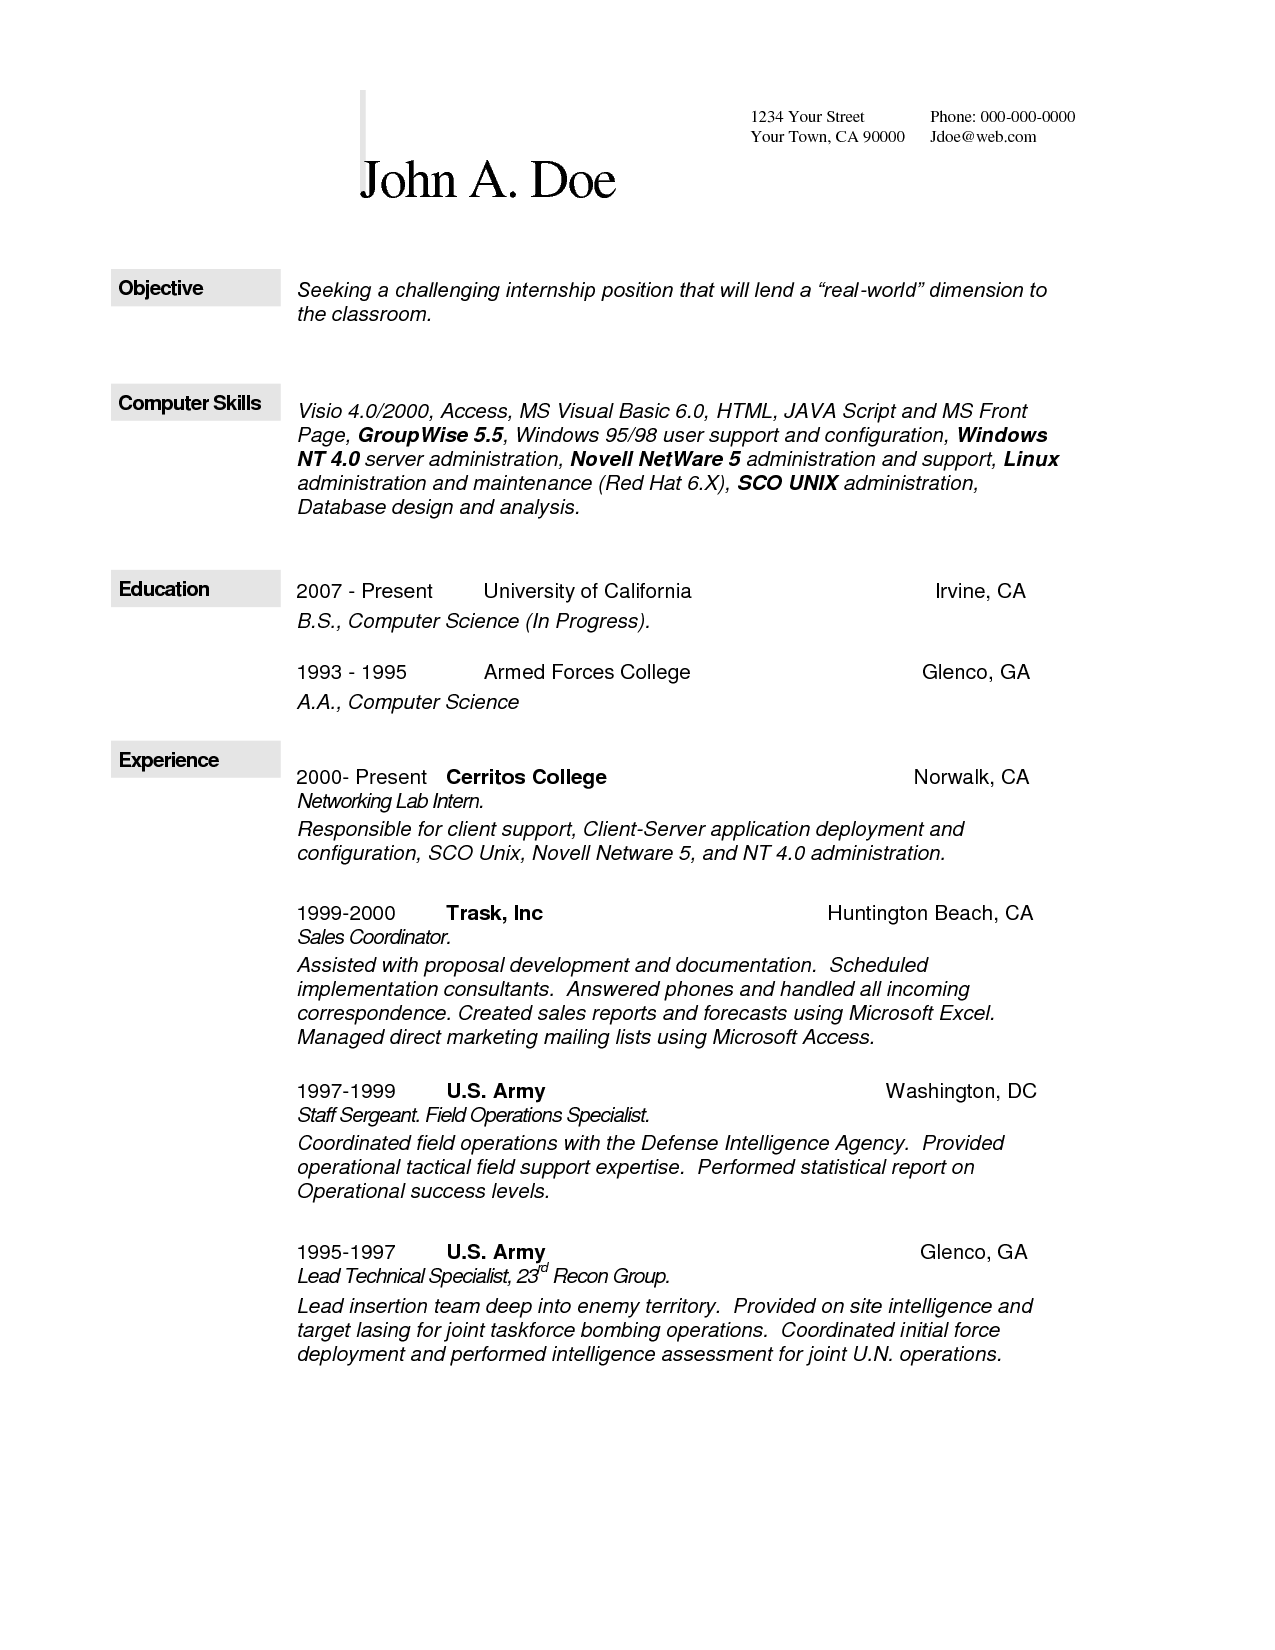 Resume Template Examples Self Defense Tip How To Stop An Attackerclick Here For